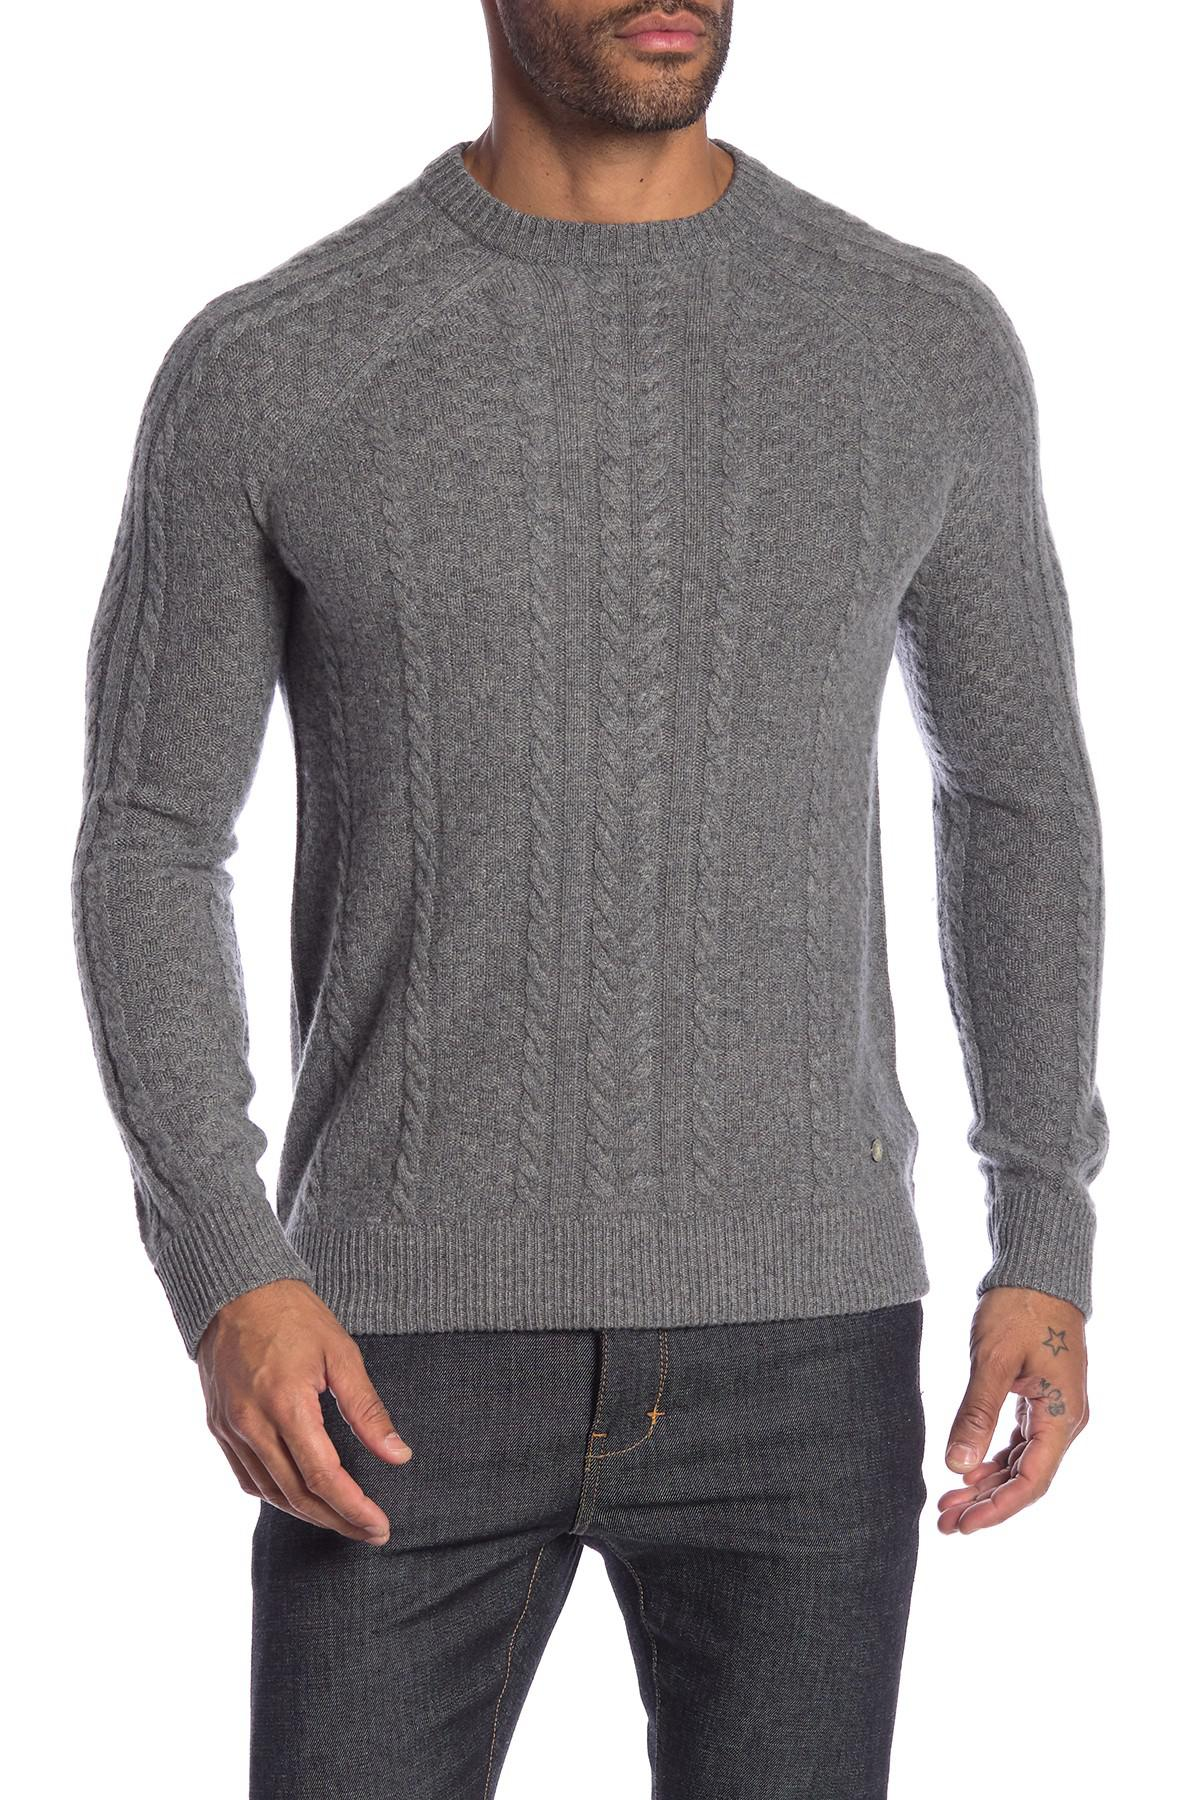 Lyst Raffi Fisherman Cable Knit Cashmere Sweater In Gray For Men